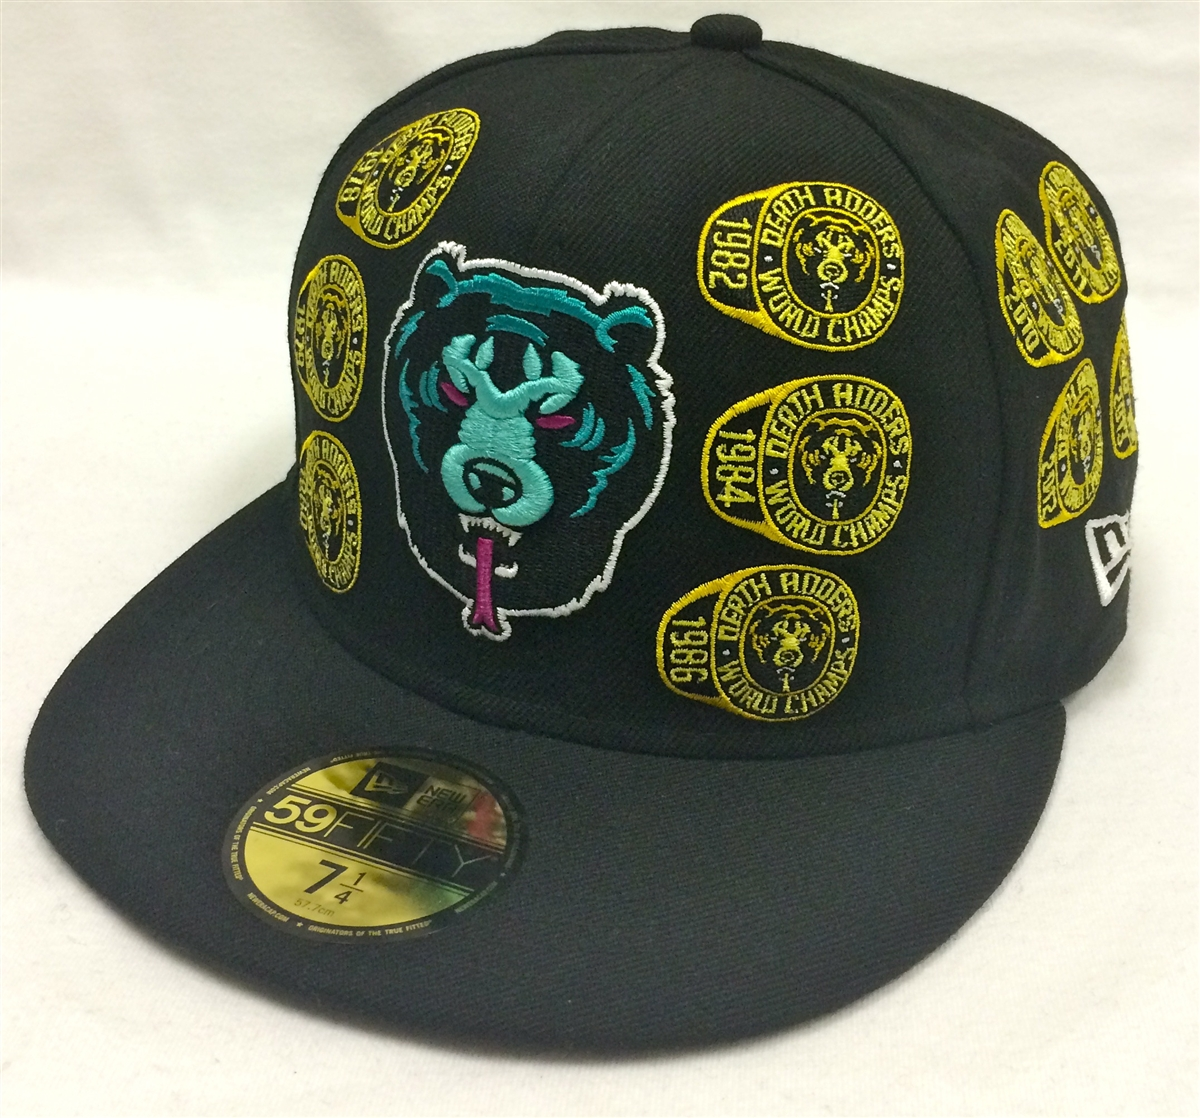 a19340f062f ... promo code for new era 59fifty mishka death adders dynasty black fitted  cap c4d52 43e9a